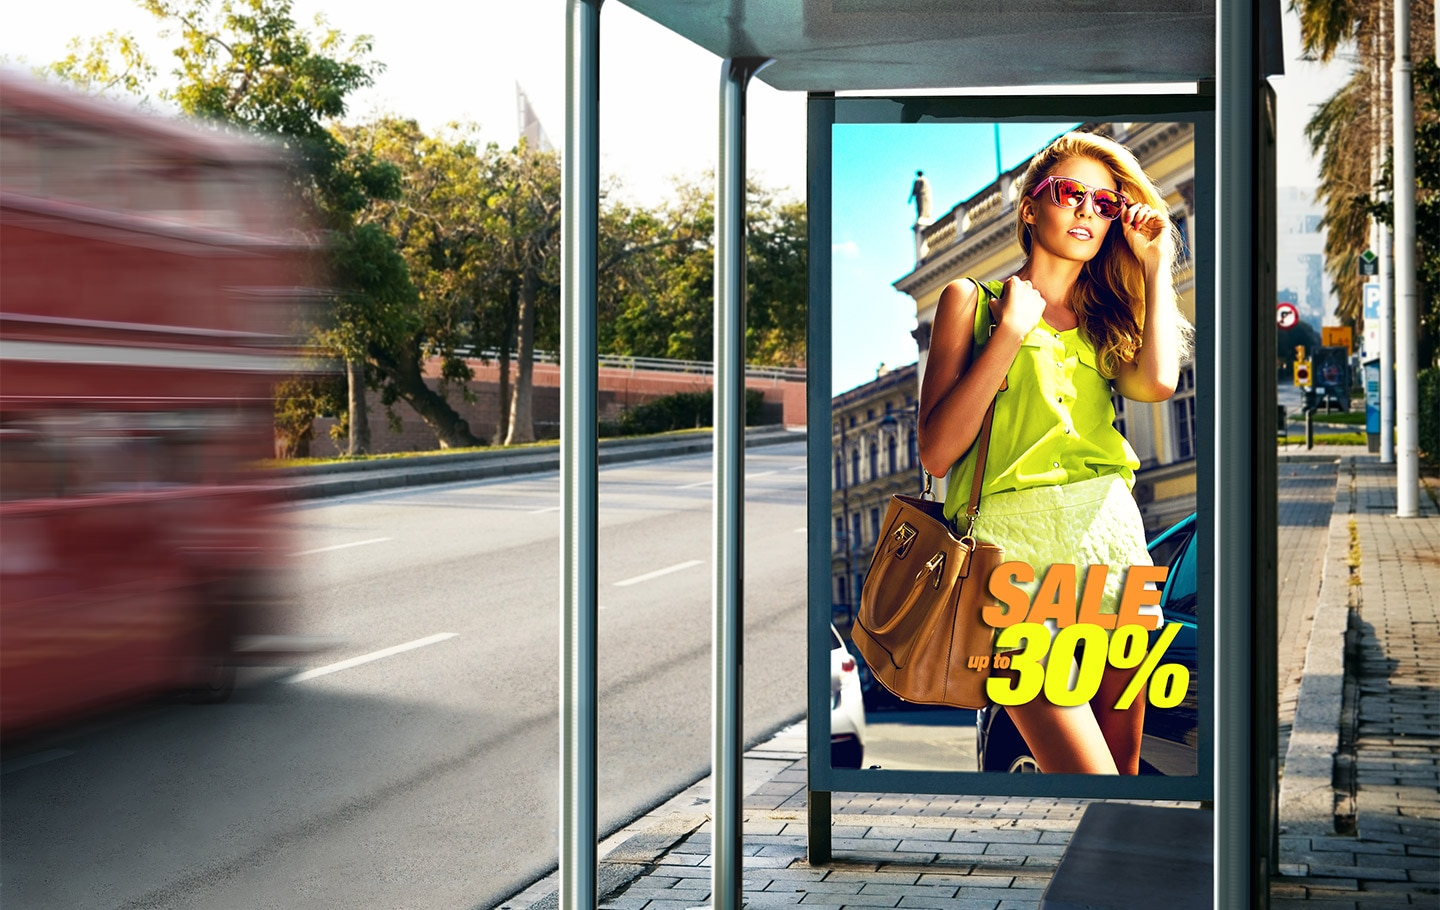 de-feature-large-displays-optimized-for-dooh-152440498?$FB_TYPE_A_JPG$$FB_TYPE_A_JPG$